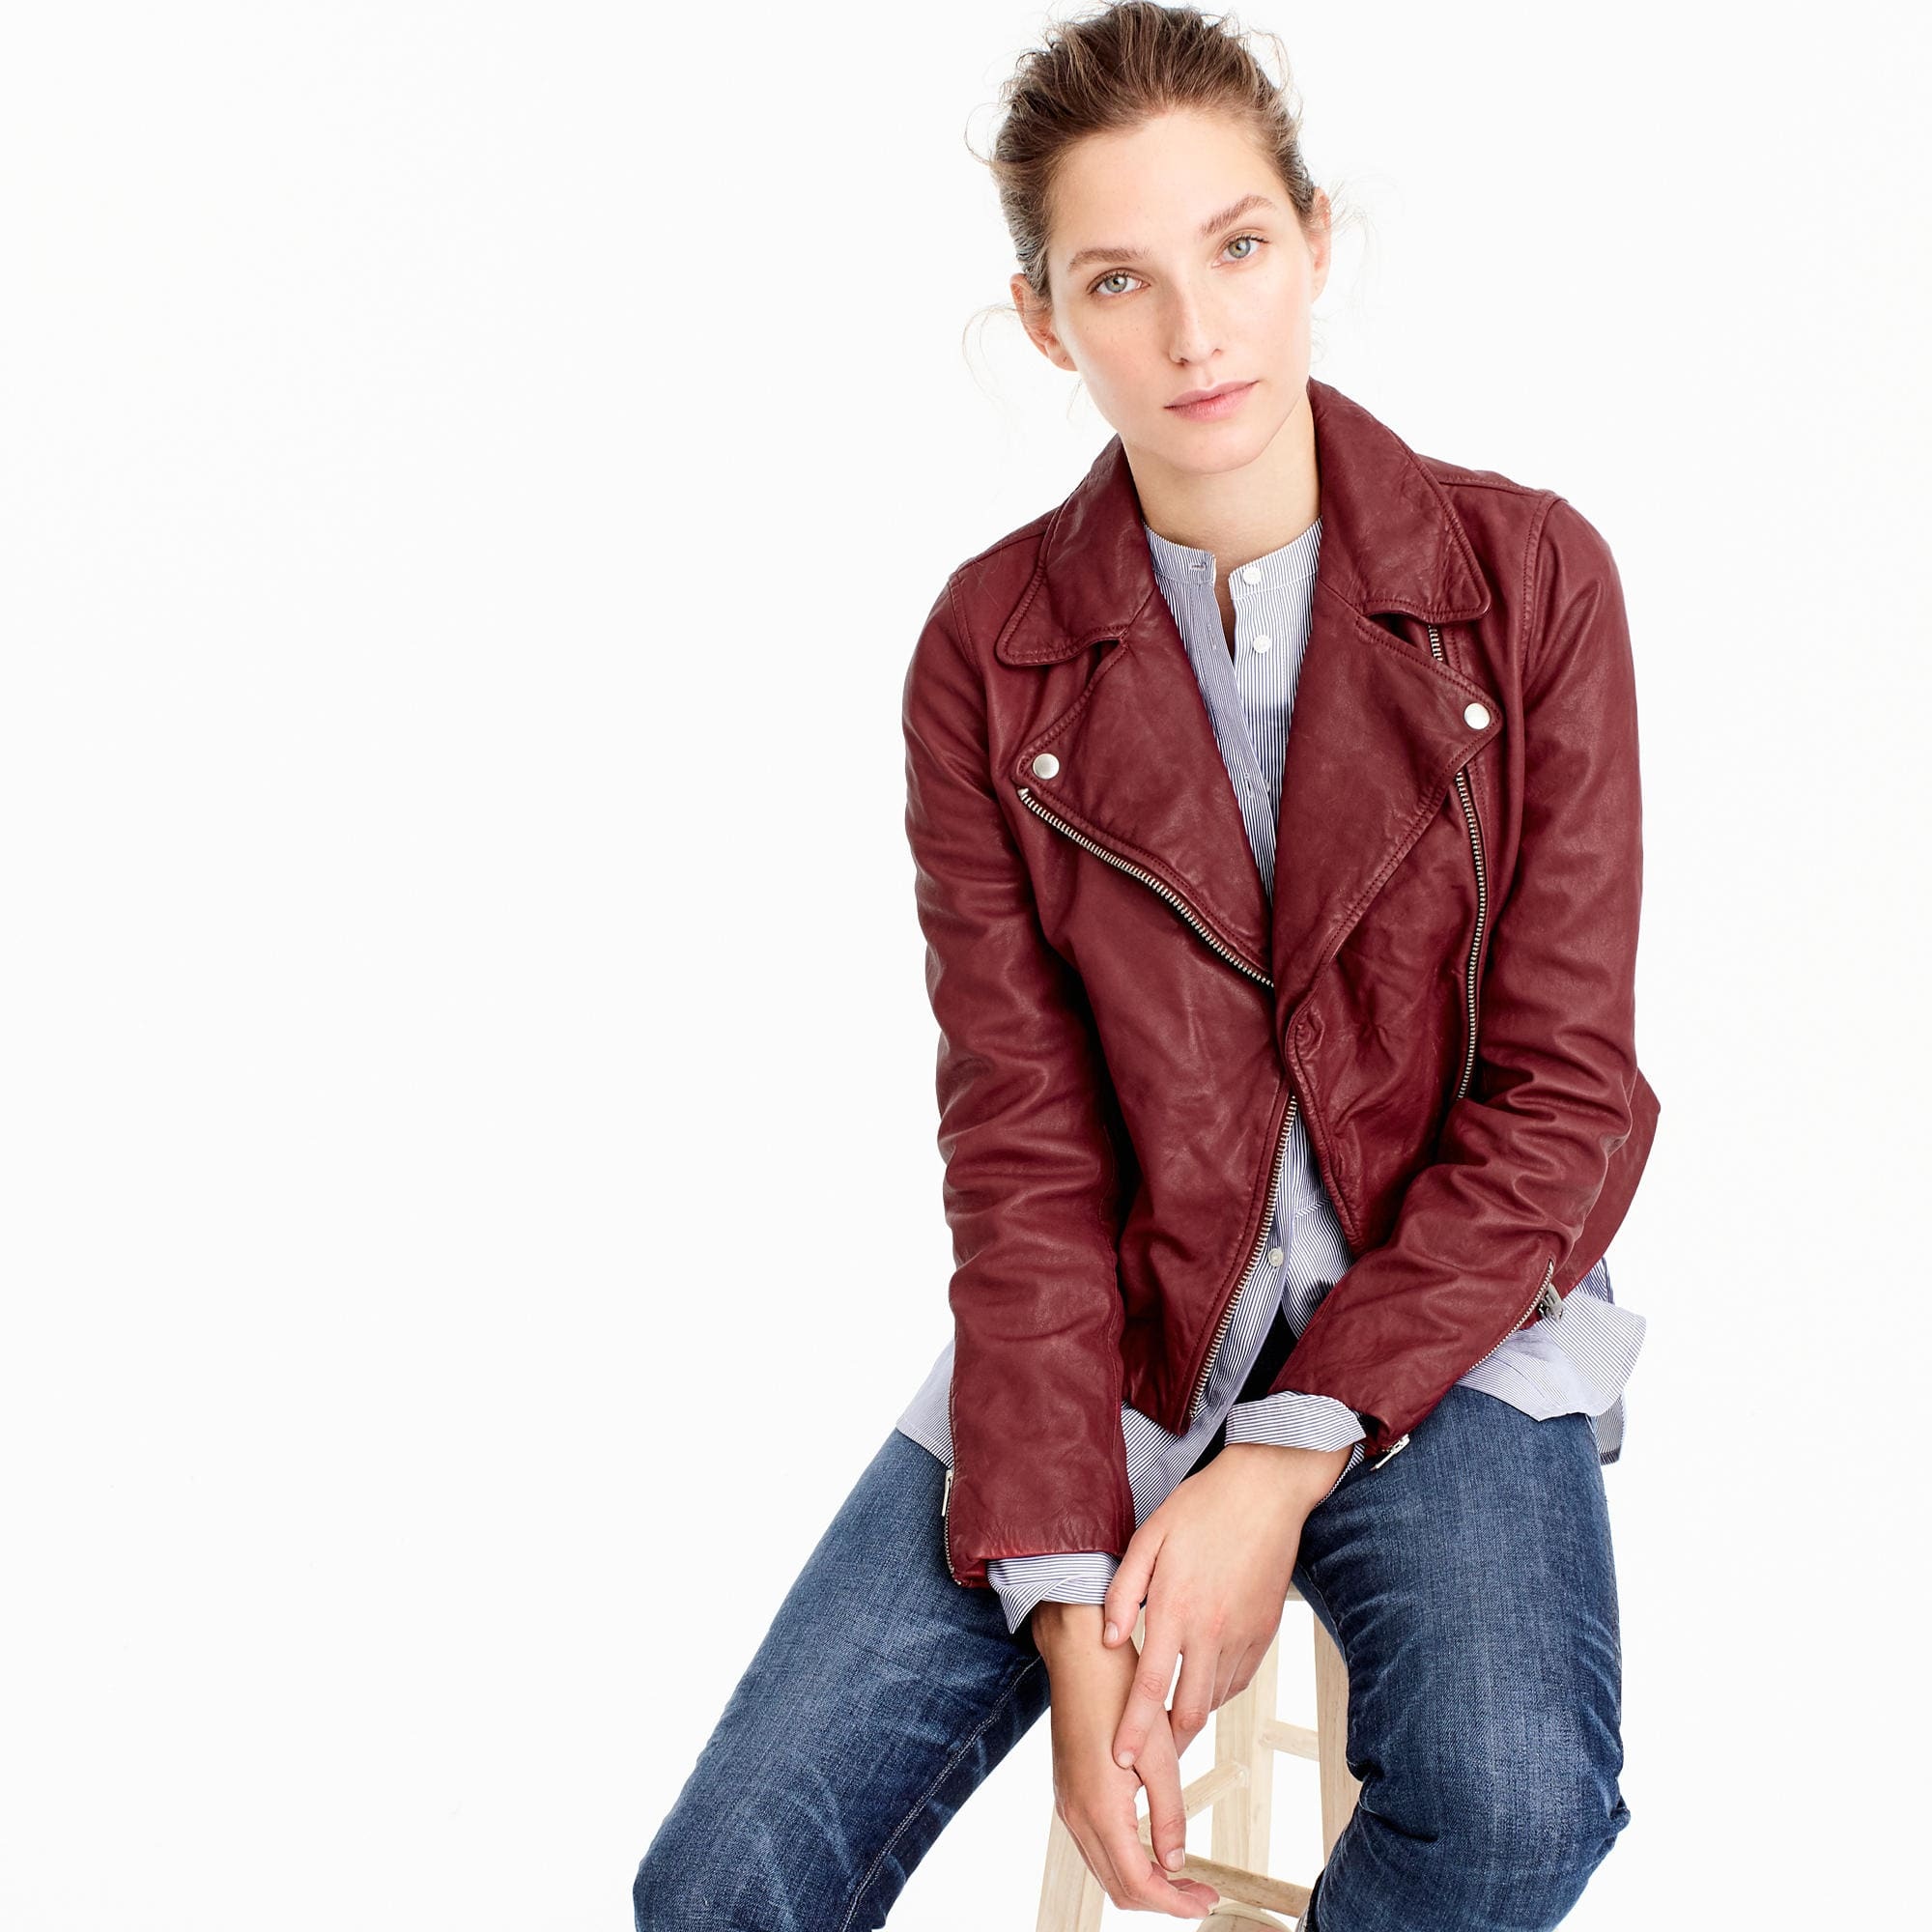 e4a56073 J.Crew Collection Washed Leather Motorcycle Jacket, $495, available at  J.Crew.